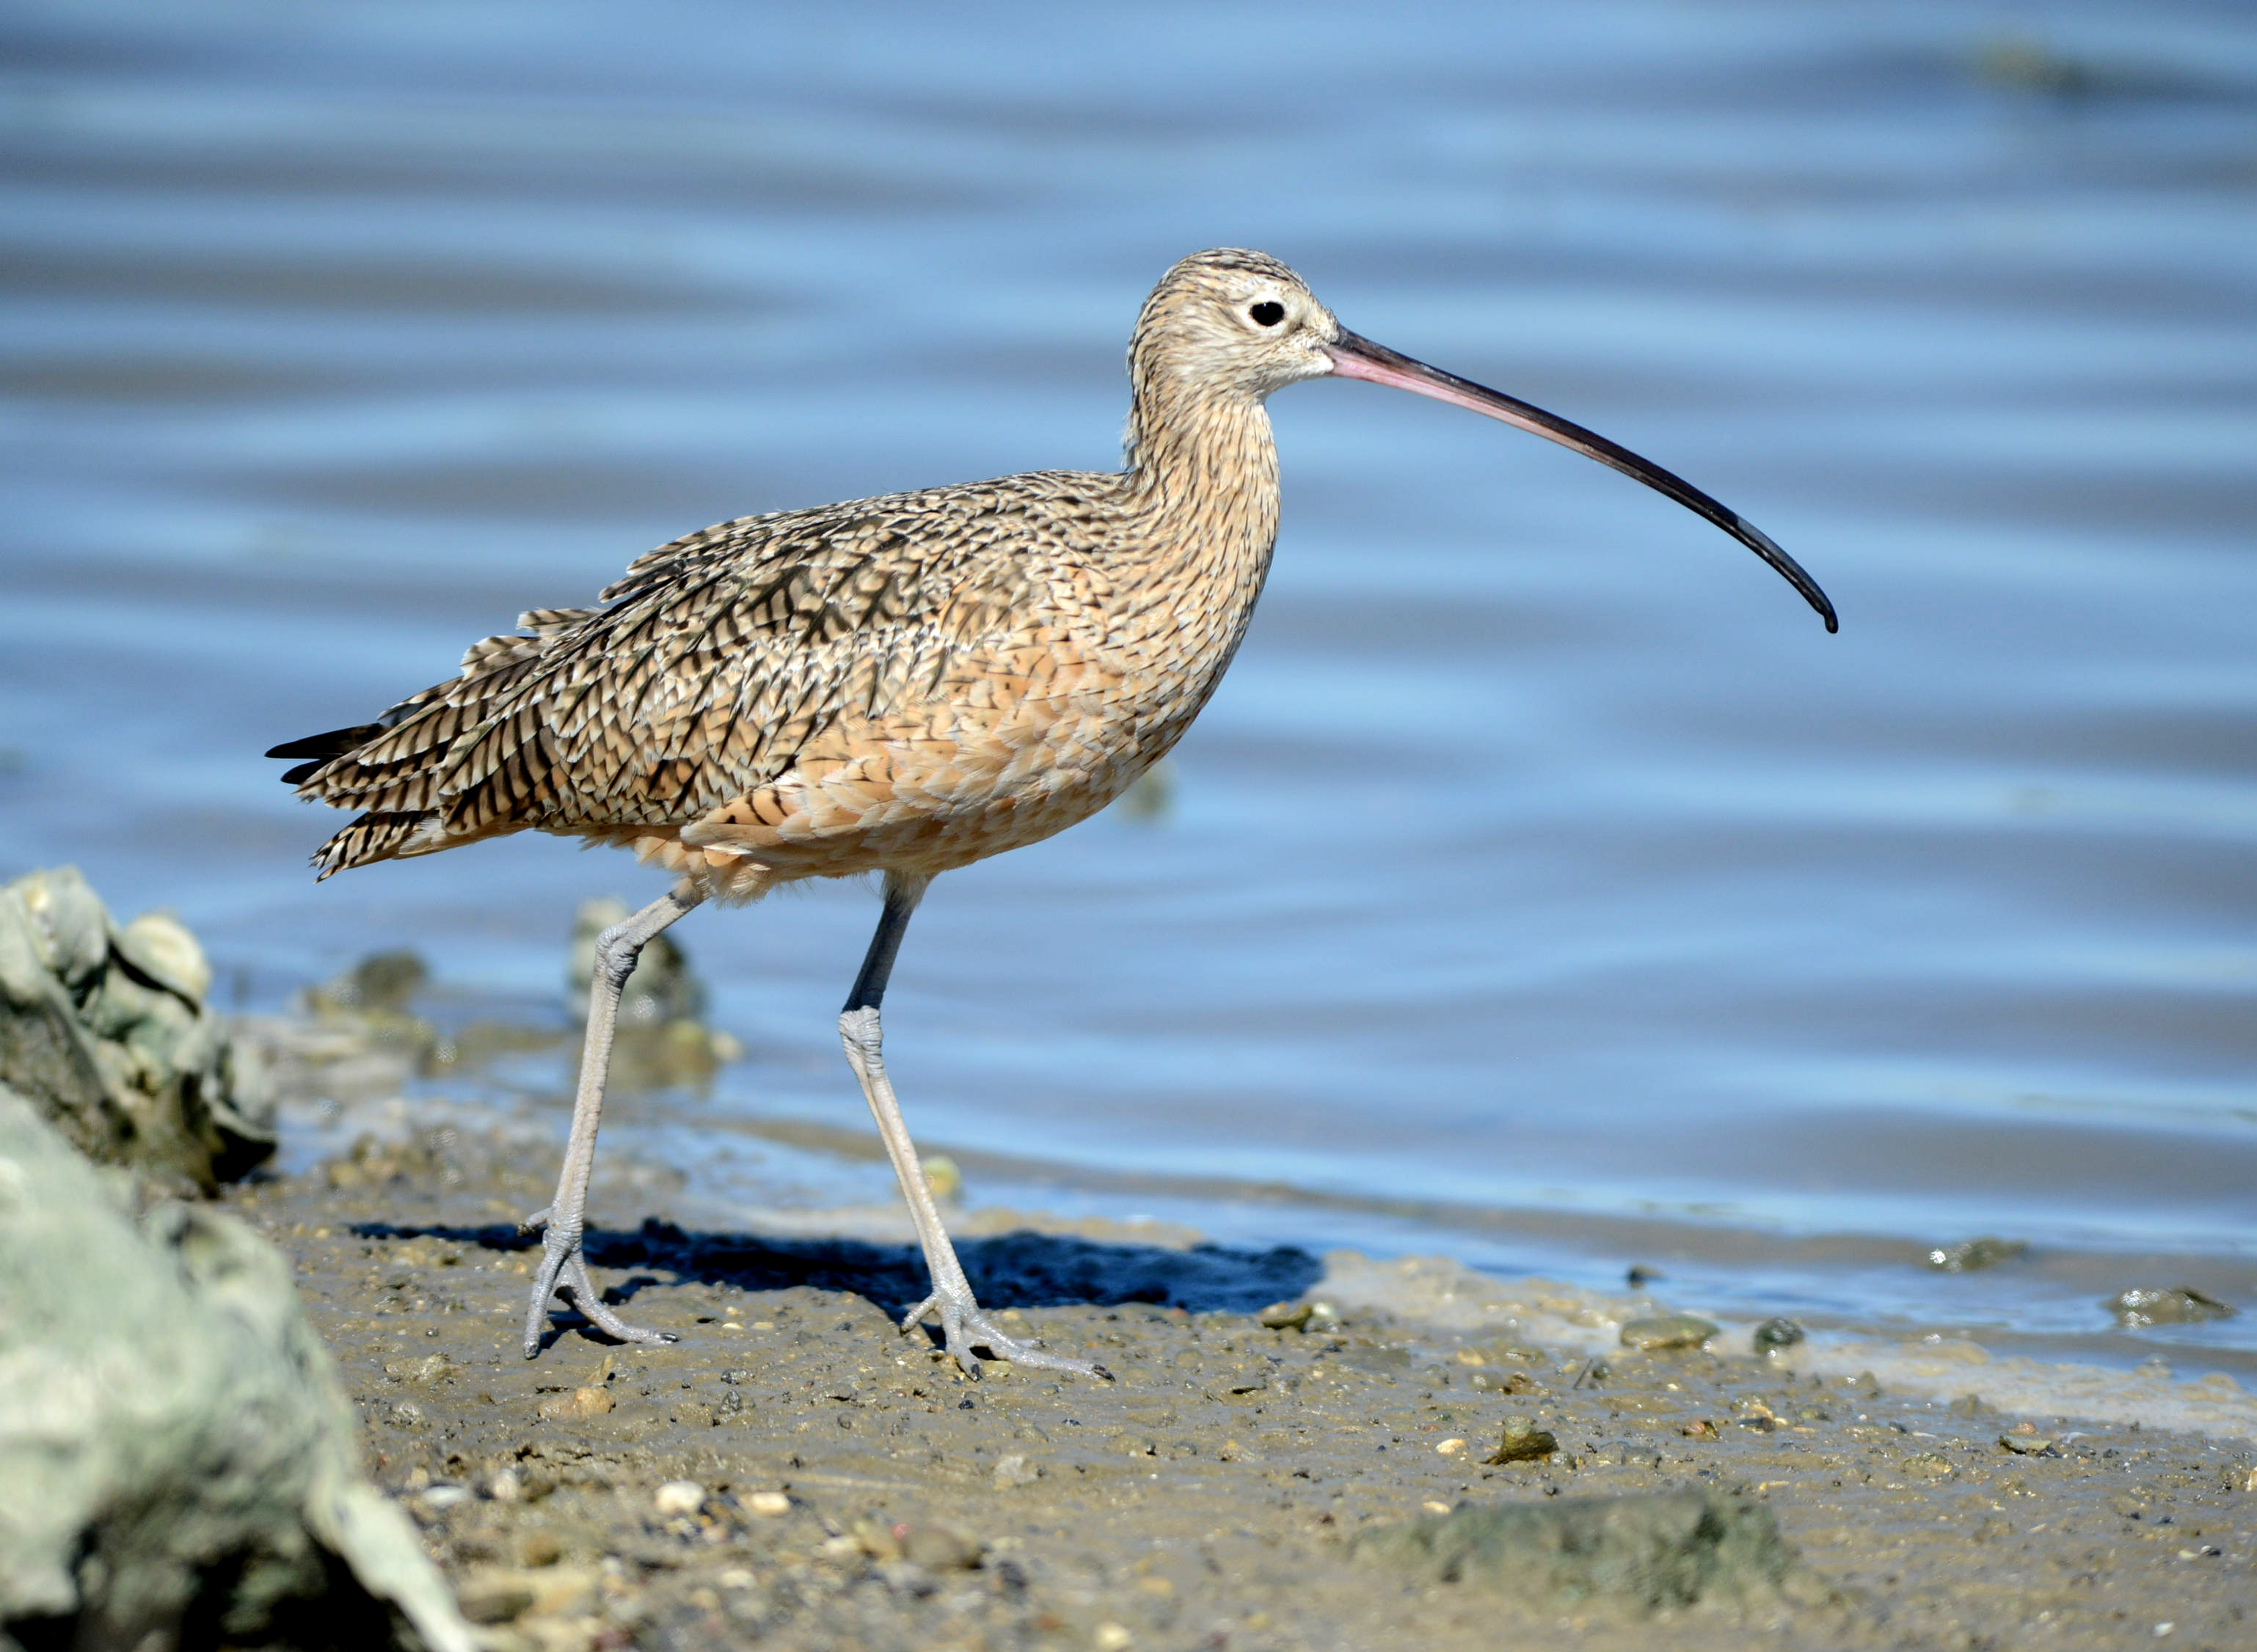 Long-billed Curlew in galveston island texas